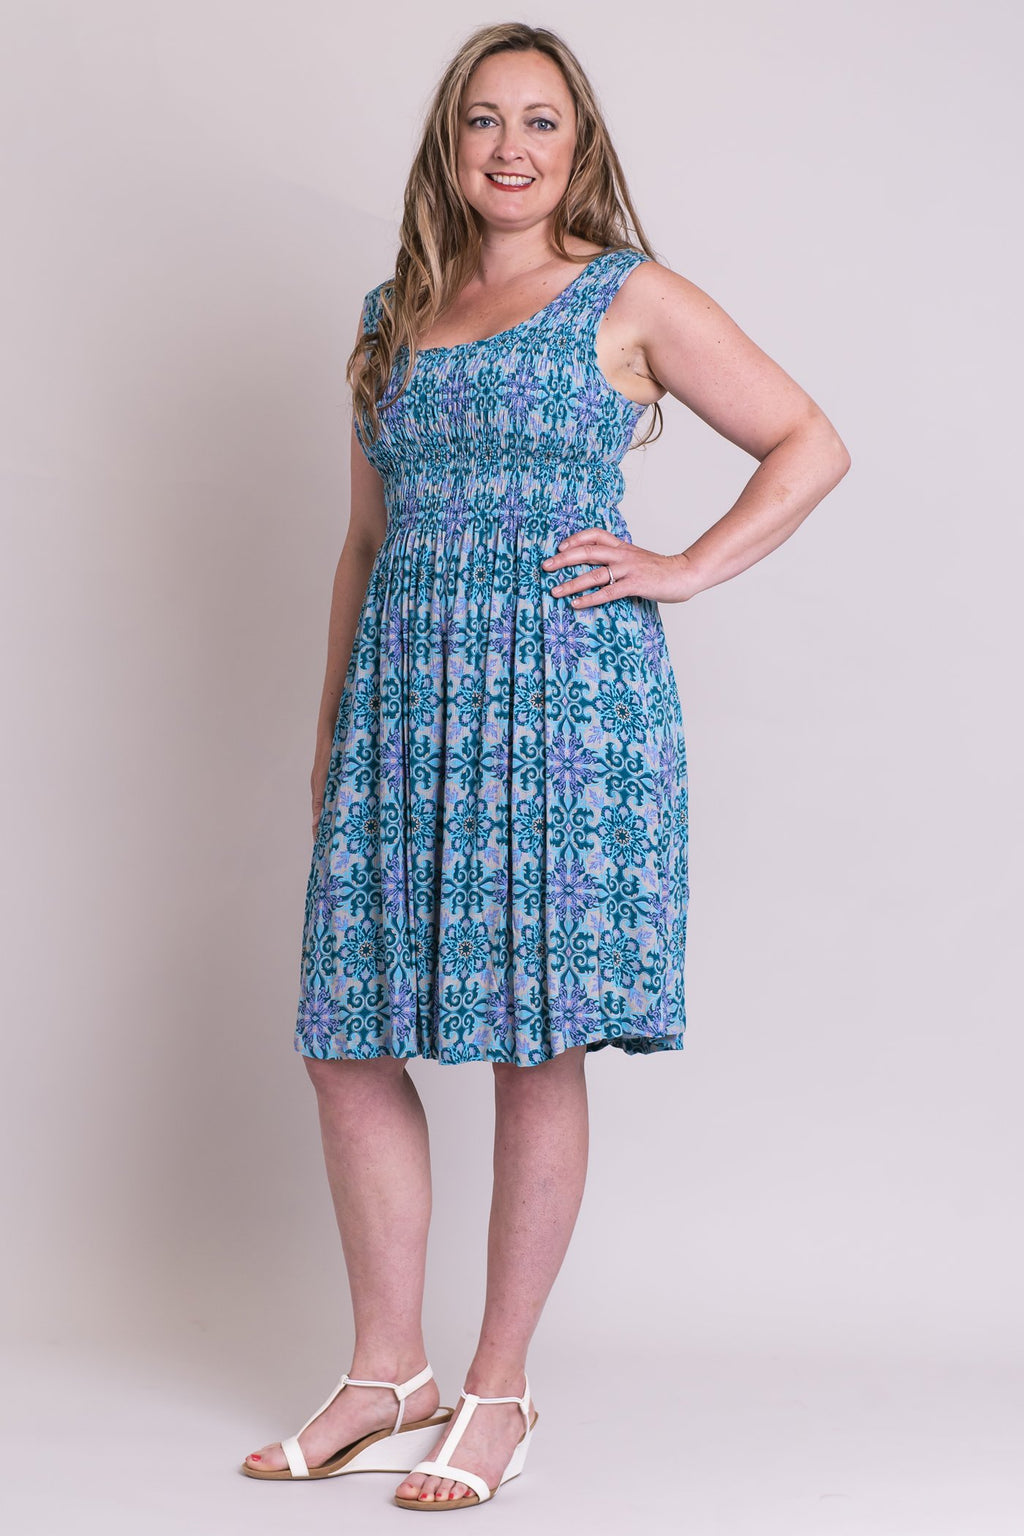 Giselle Midi Dress, Teal Mosaic, Batik Art - Blue Sky Clothing Co